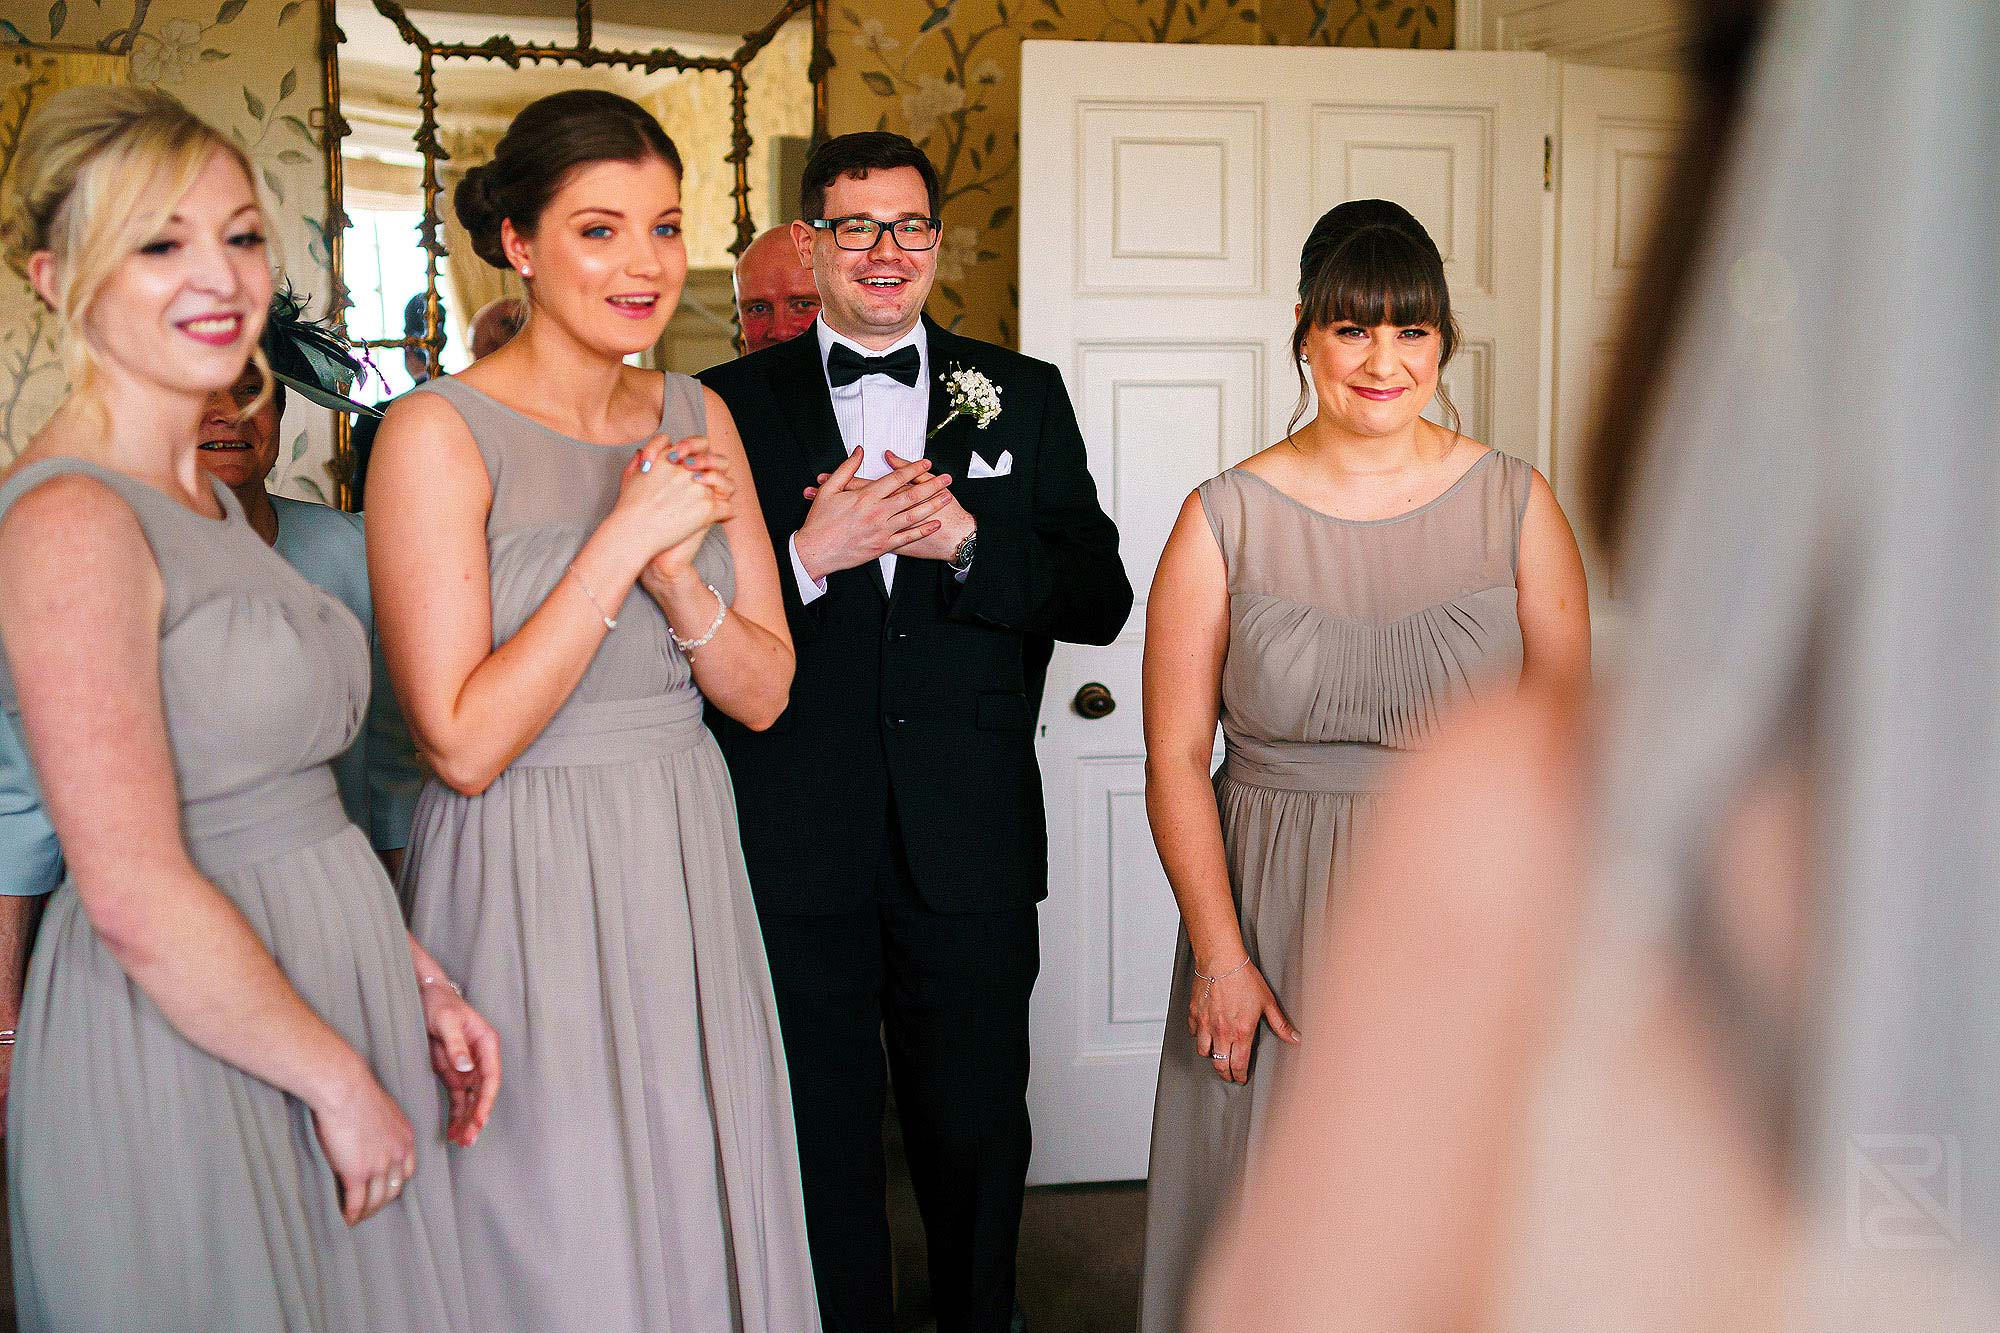 wedding guests looking at bride in dress for first time